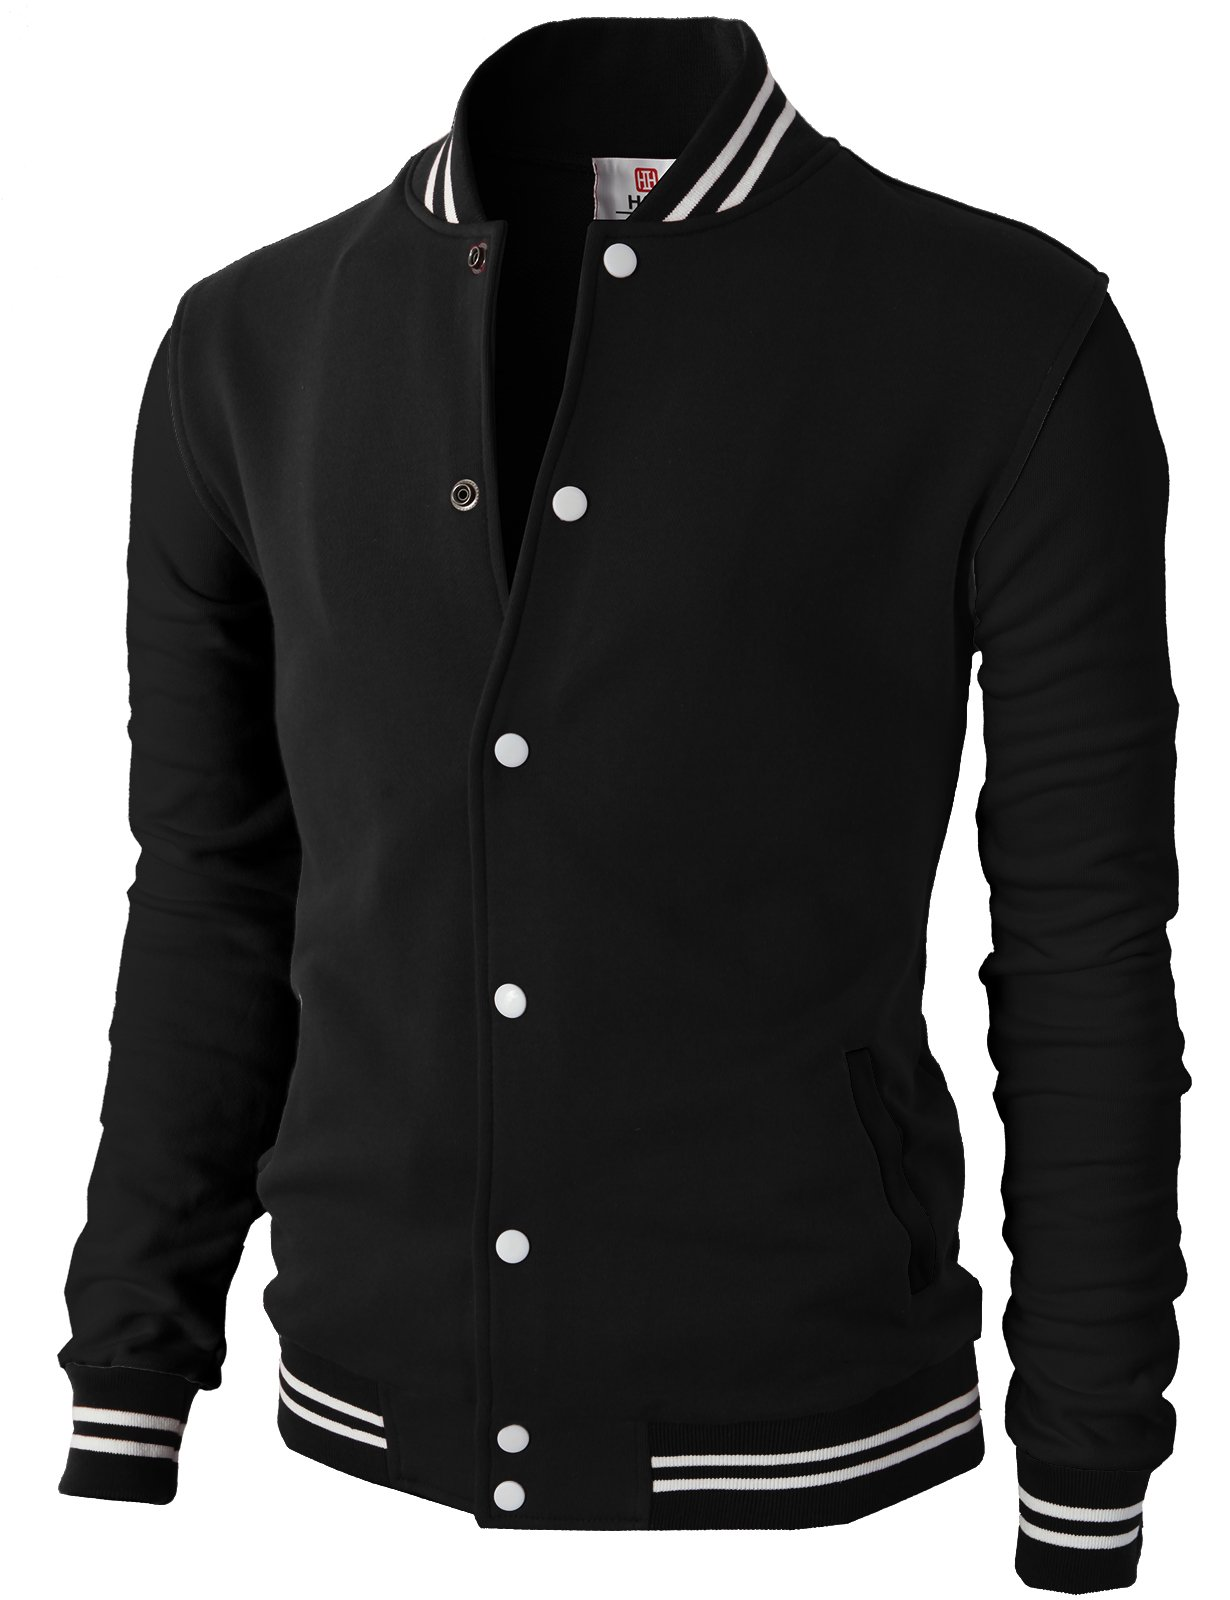 H2H Mens Premium Slim Fit Bomber Button Front Cotton Lightweight Varsity Baseball Jacket JetBlack US XL/Asia 2XL (CMOJA083)